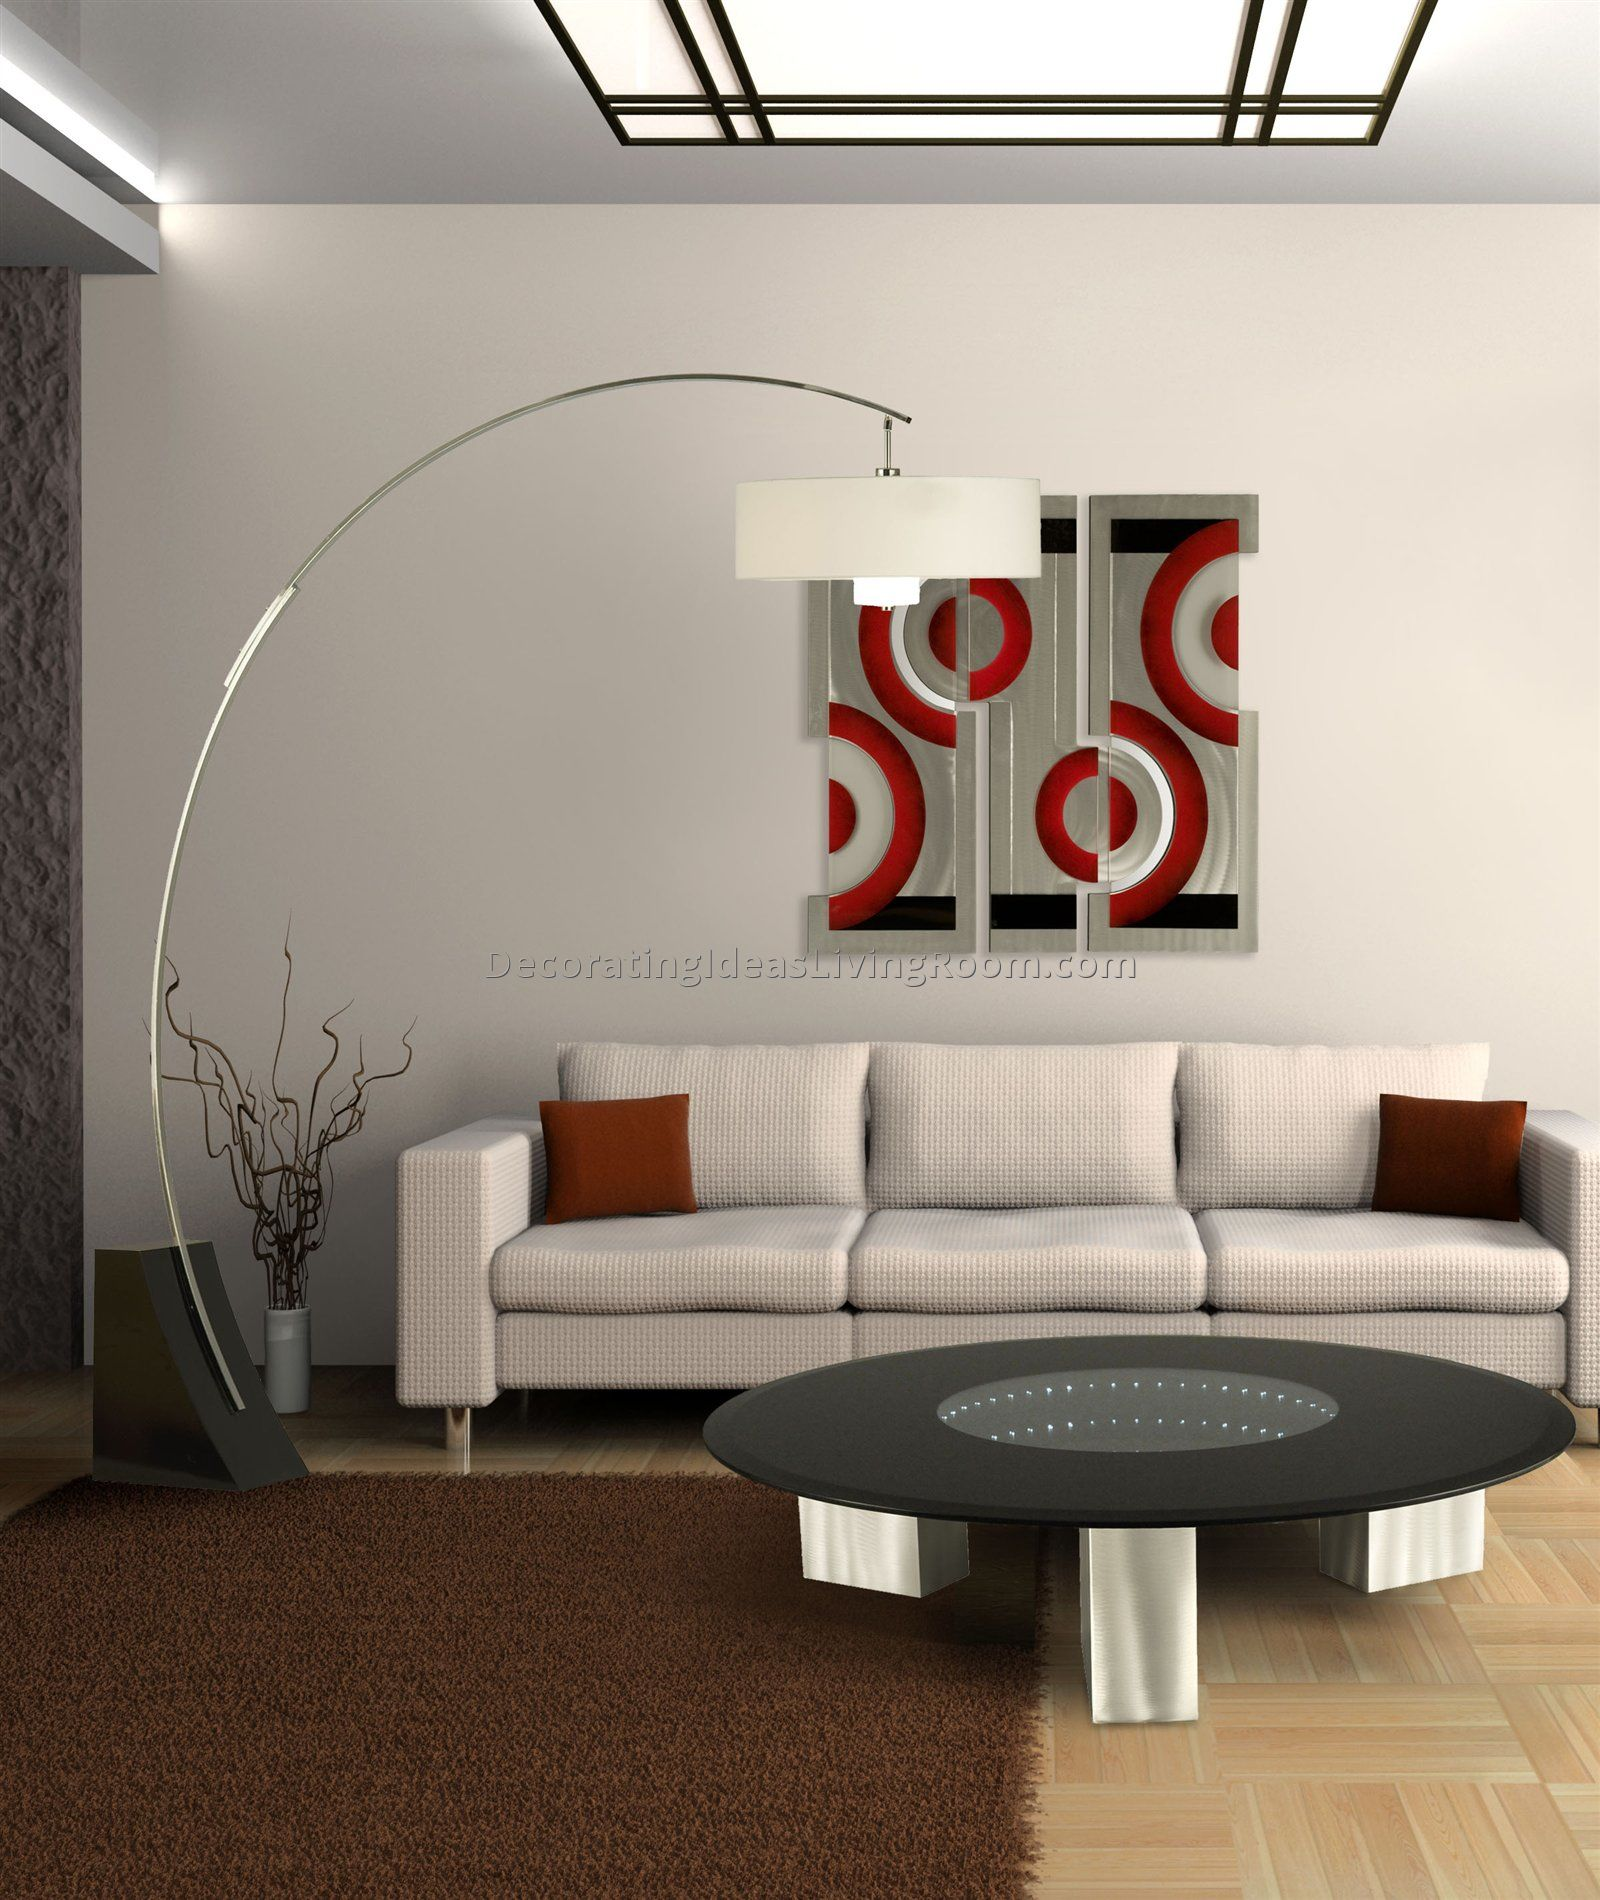 20 Modern Floor Lamps Design Ideas (With Pictures)